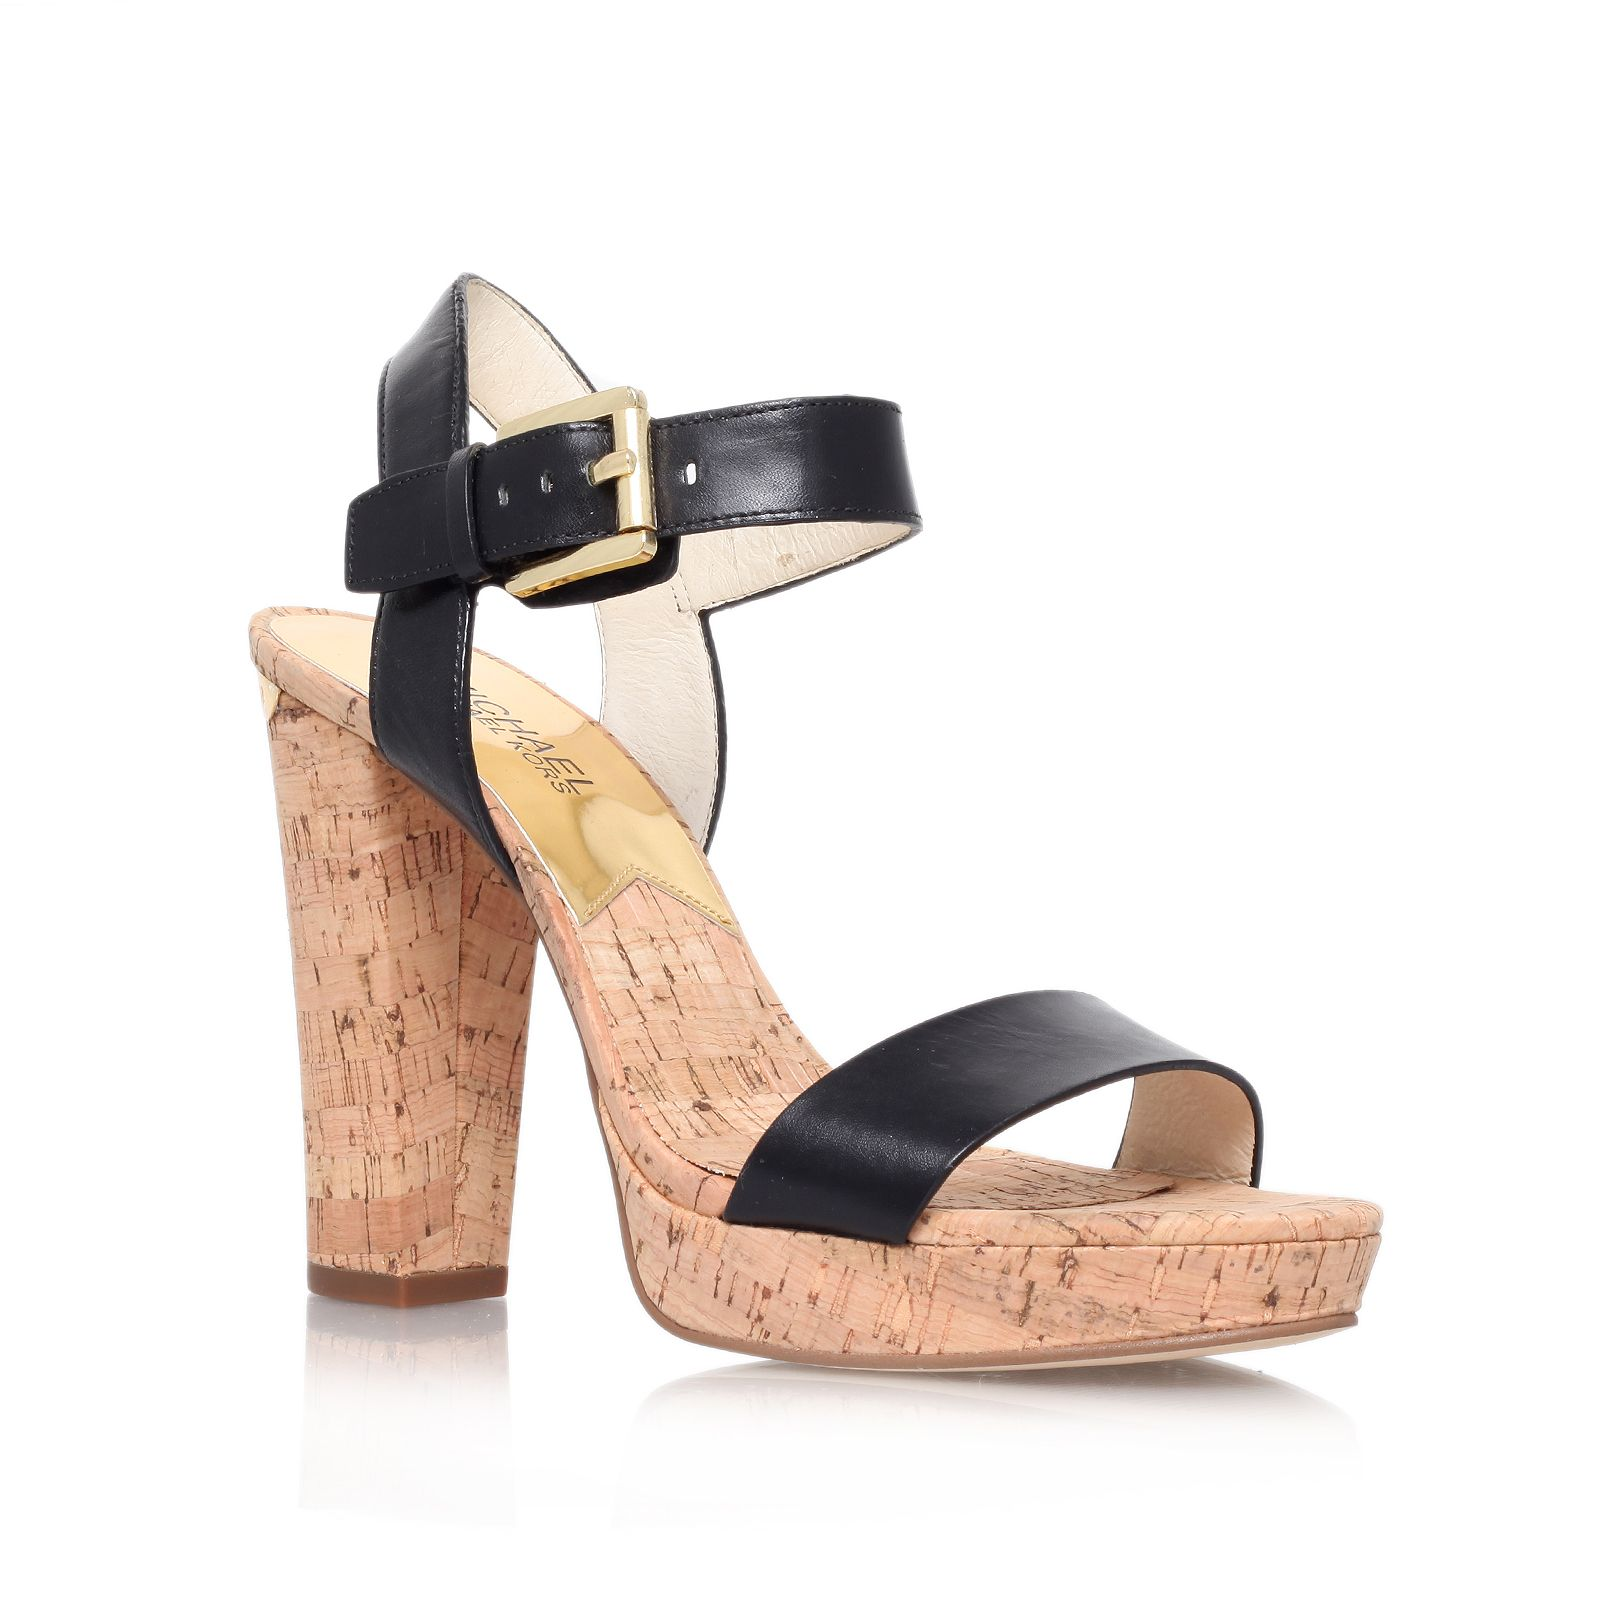 London high heel platform sandals